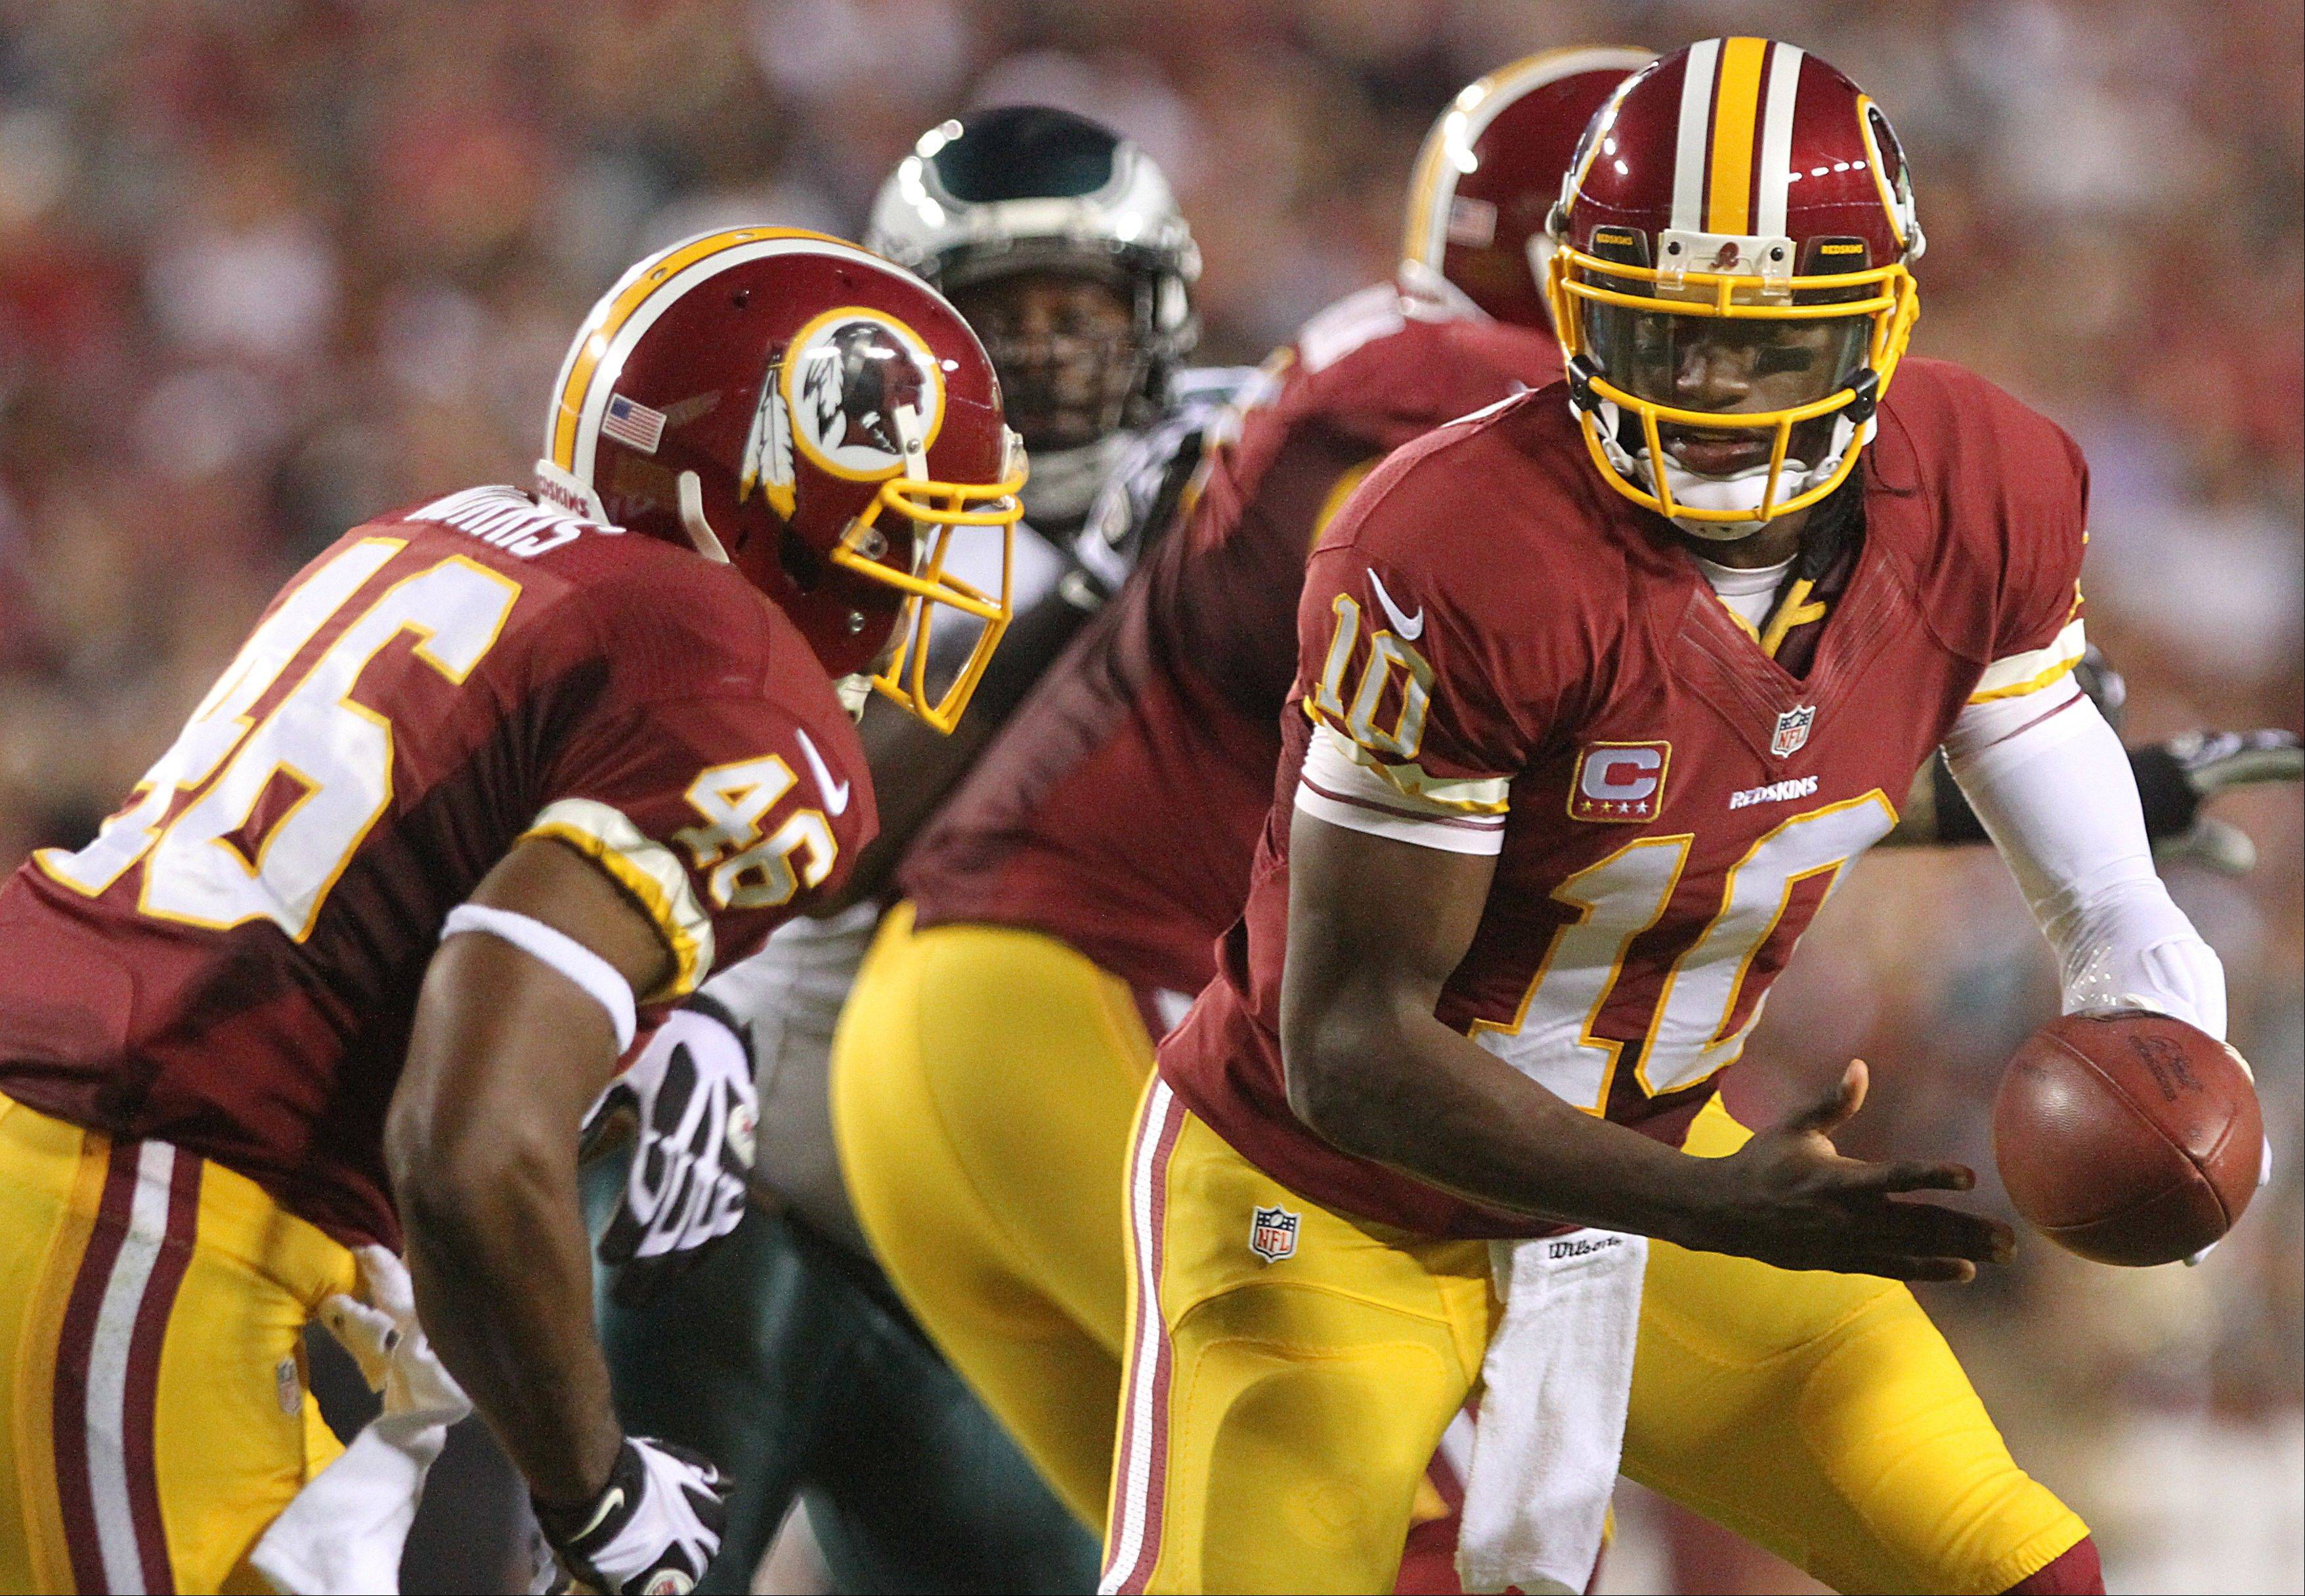 Washington Redskins quarterback Robert Griffin III turns to hand off to running back Alfred Morris during game Monday against the Philadelphia Eagles. Owner Dan Snyder has vowed never to change the team's name.